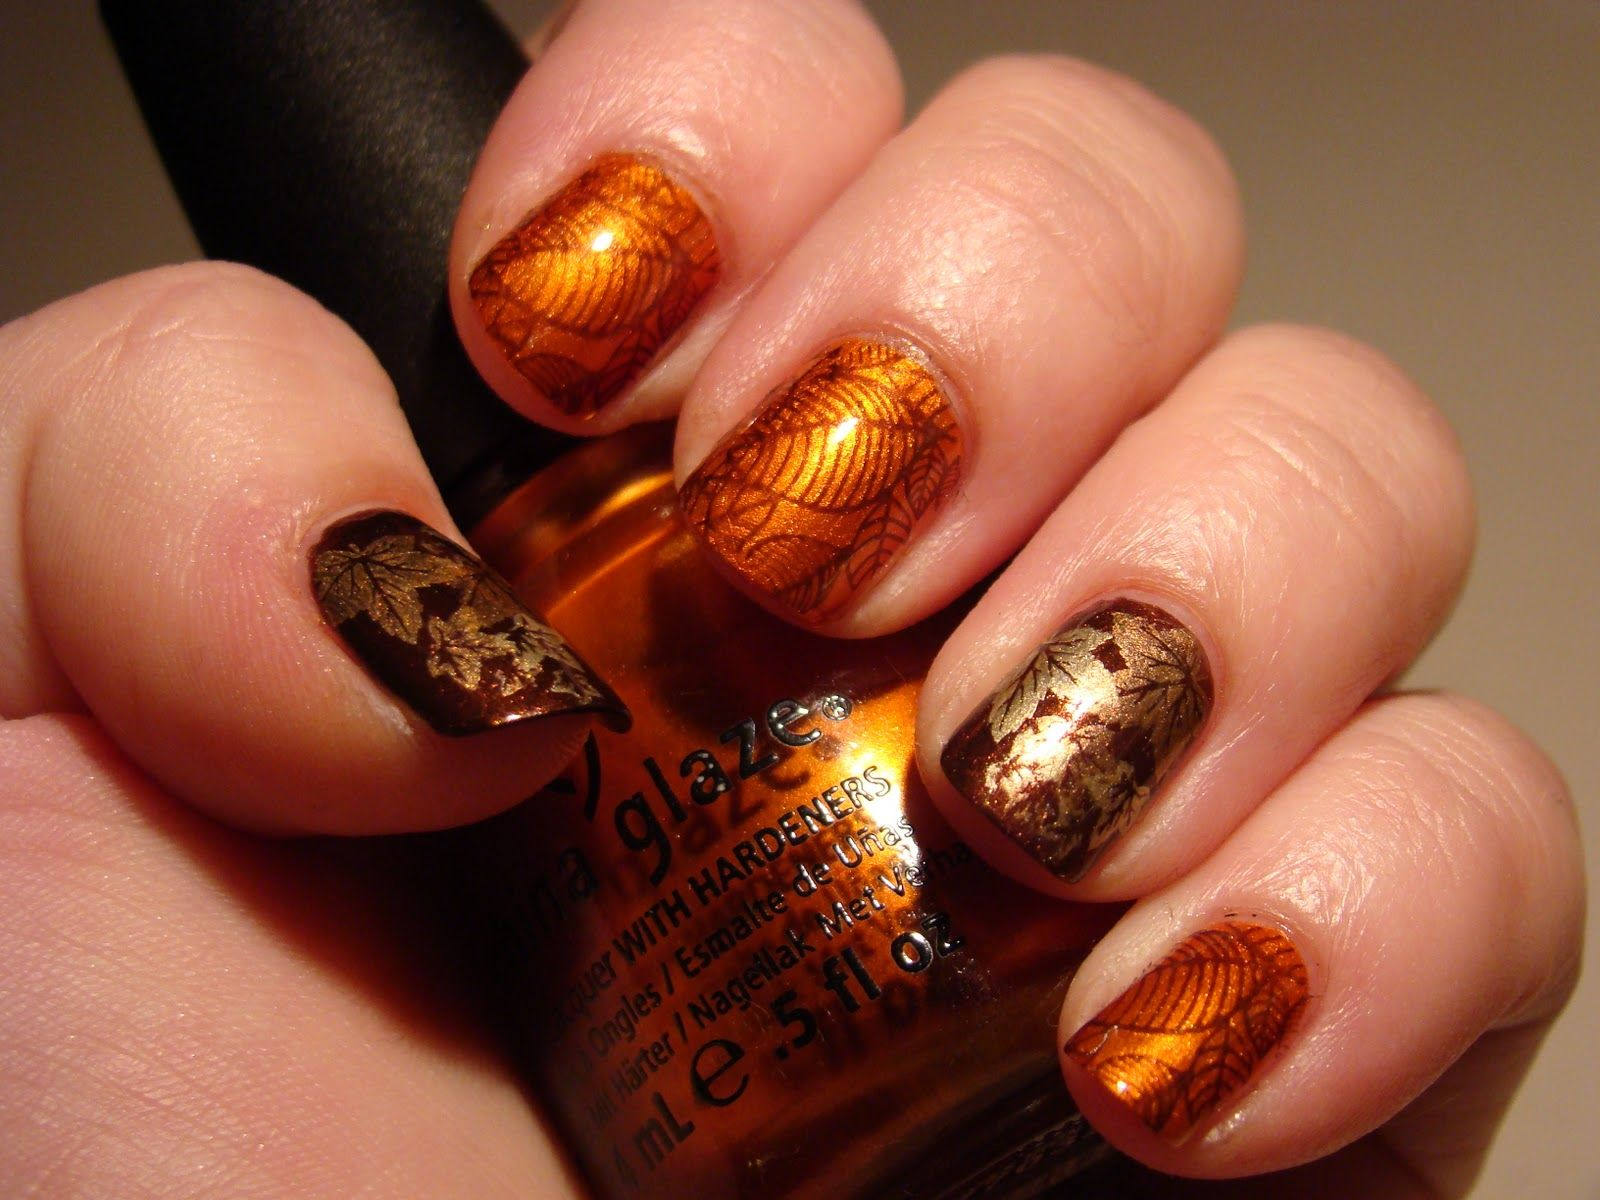 Thanksgiving nail colors base colors china glaze cross iron 360 check out these an amazing fall nail designs and get ready for the fall with some cool autumn nail designs hopefully you will like nail art ideas prinsesfo Choice Image